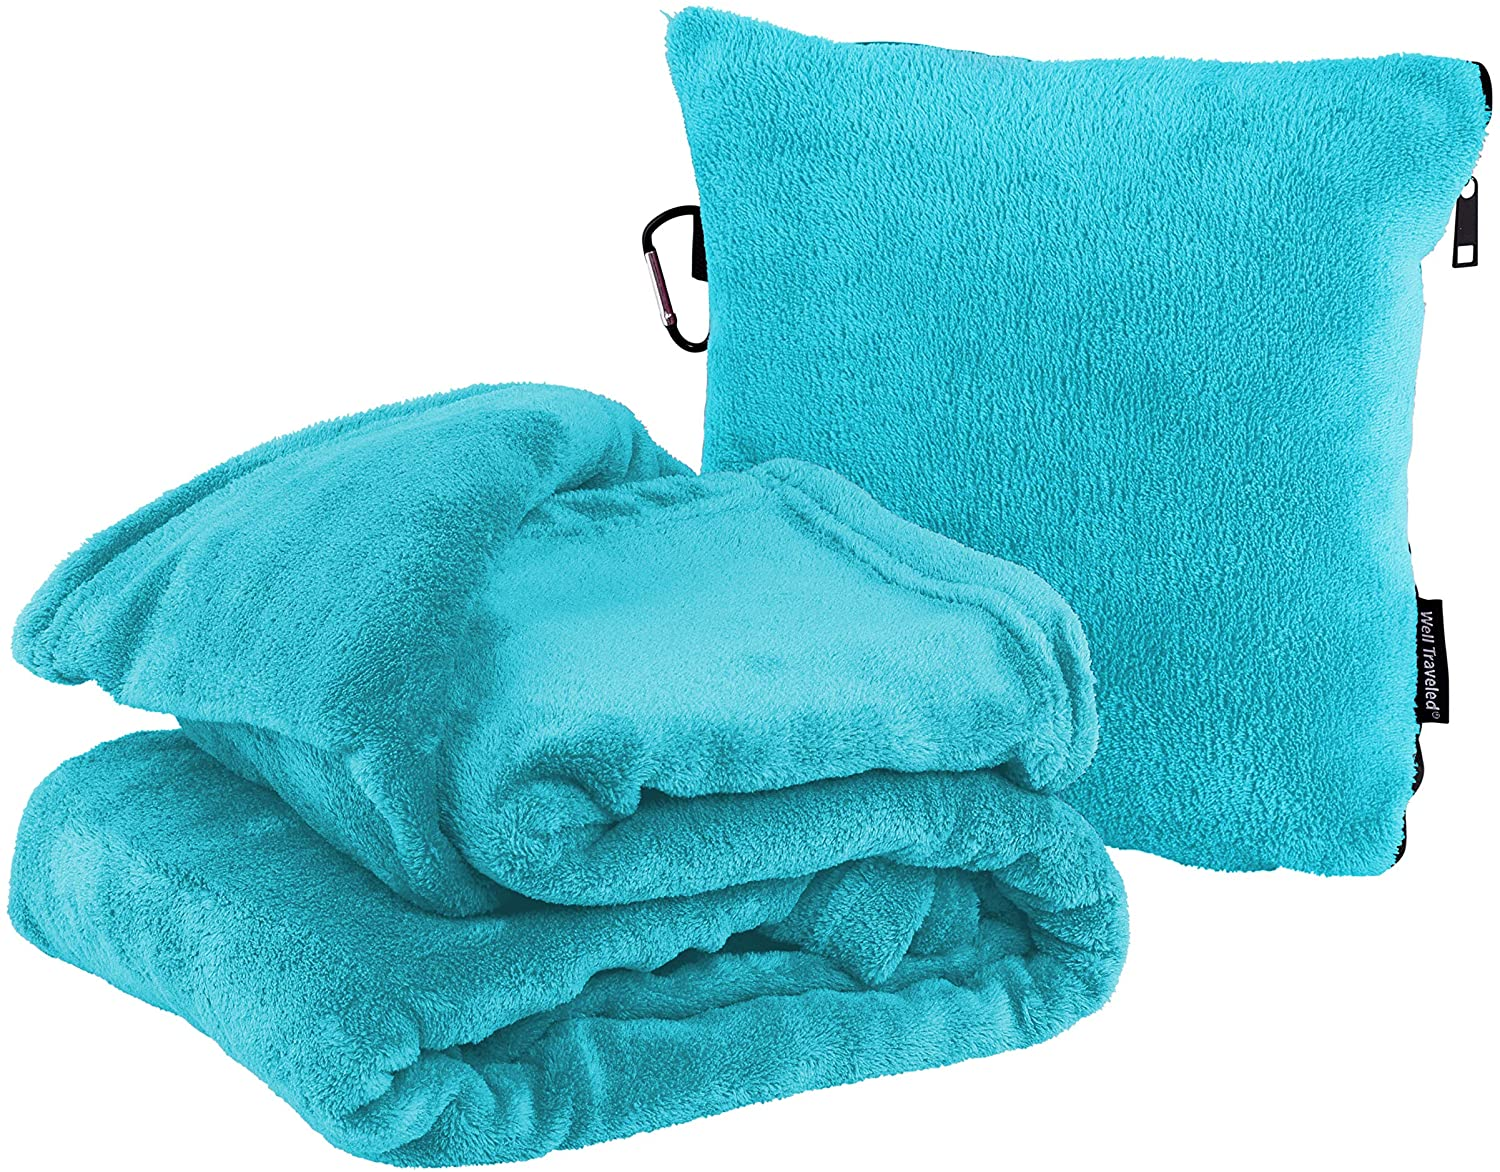 Well Traveled 2 in 1 Throw Blanket with Carry Case – Warm Fleece Blanket - Airplane Plush Neck Pillow for Sleeping Throw – Lightweight & Durable Blanket Travel Pillow - Teal